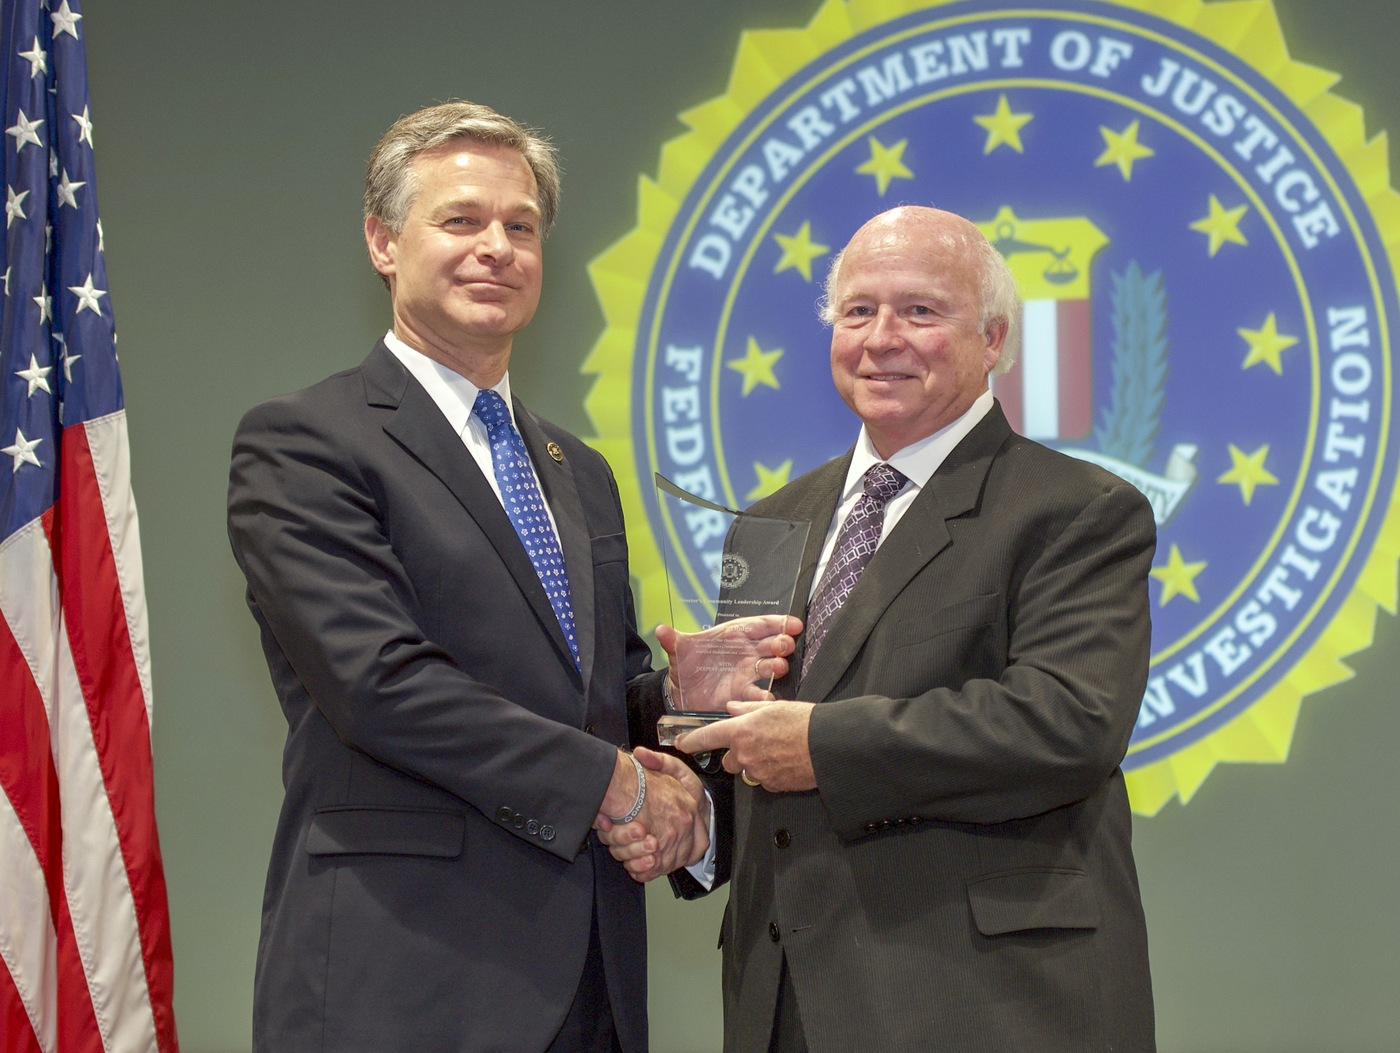 FBI Director Christopher Wray presents Miami Division recipient Charles Dodge with the Director's Community Leadership Award (DCLA) at a ceremony at FBI Headquarters on May 3, 2019.